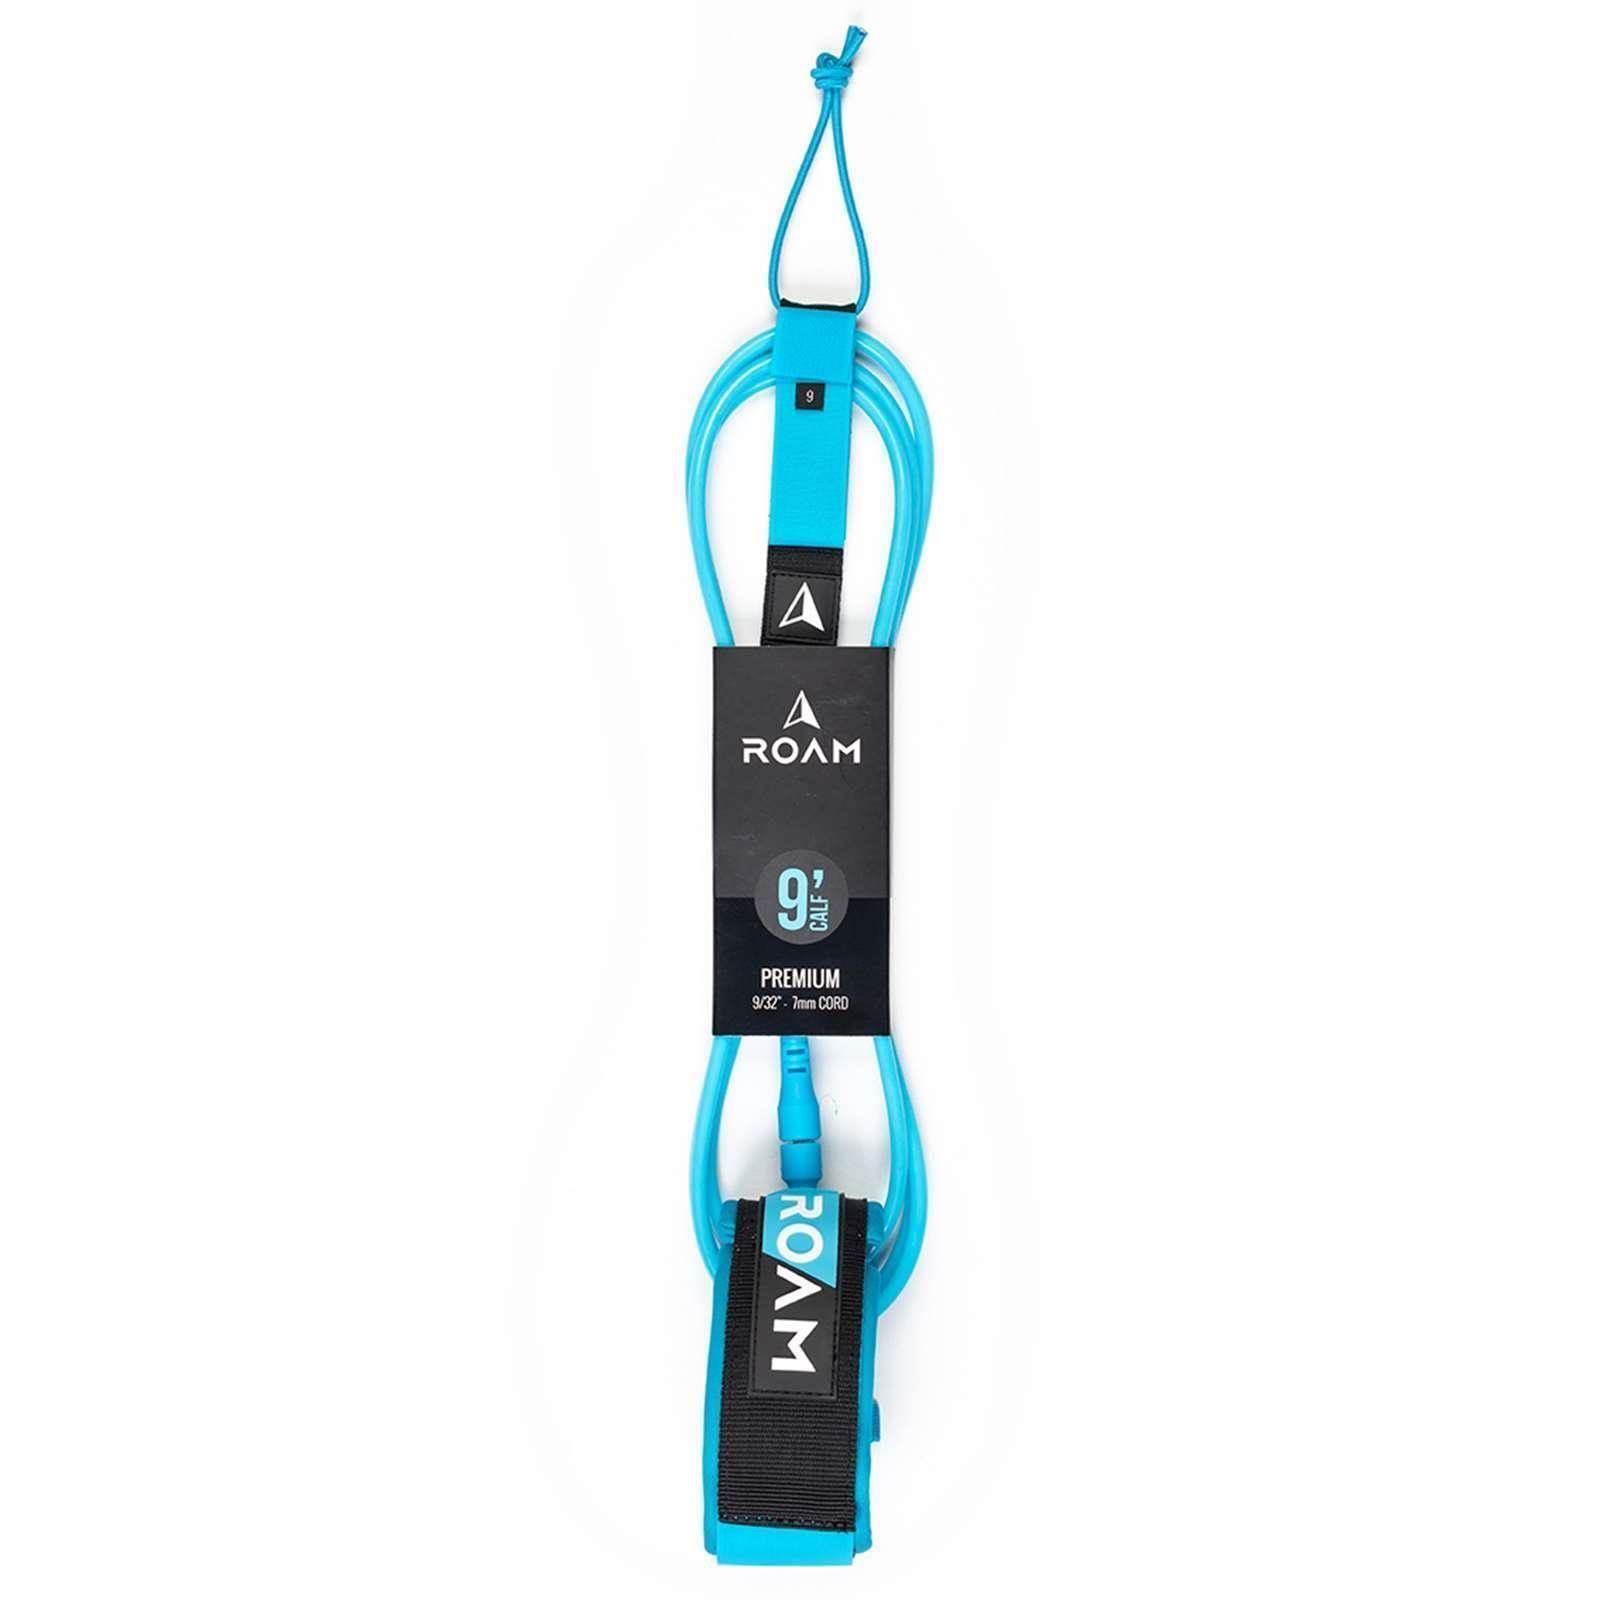 ROAM Surfboard Leash Premium 9.0 Knie 7mm Blau